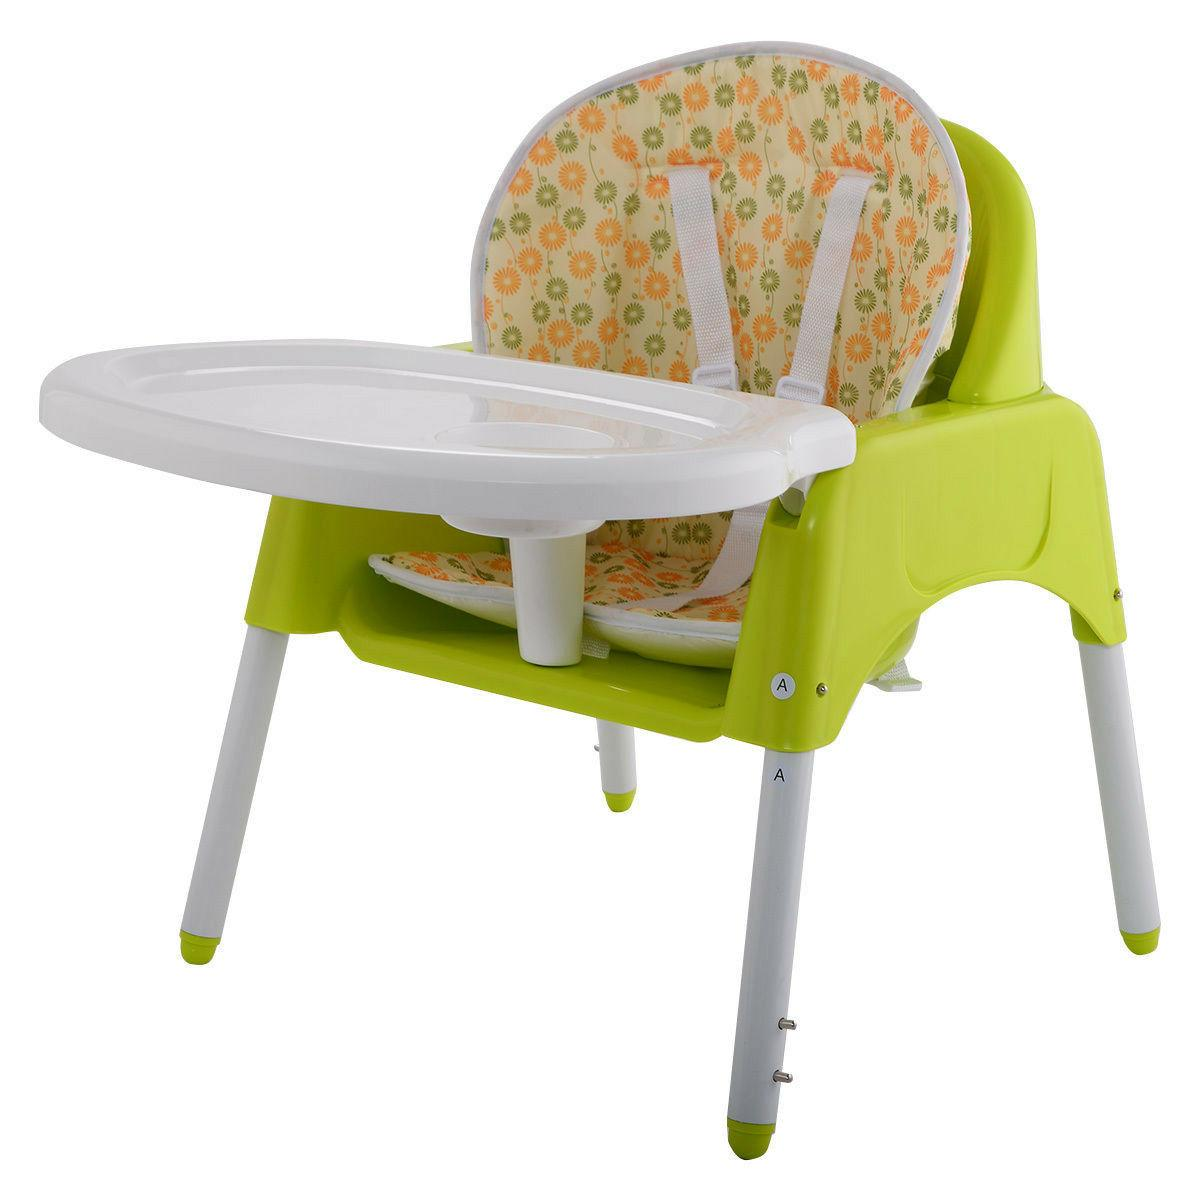 Costway Green 3 in 1 Convertible Toddler